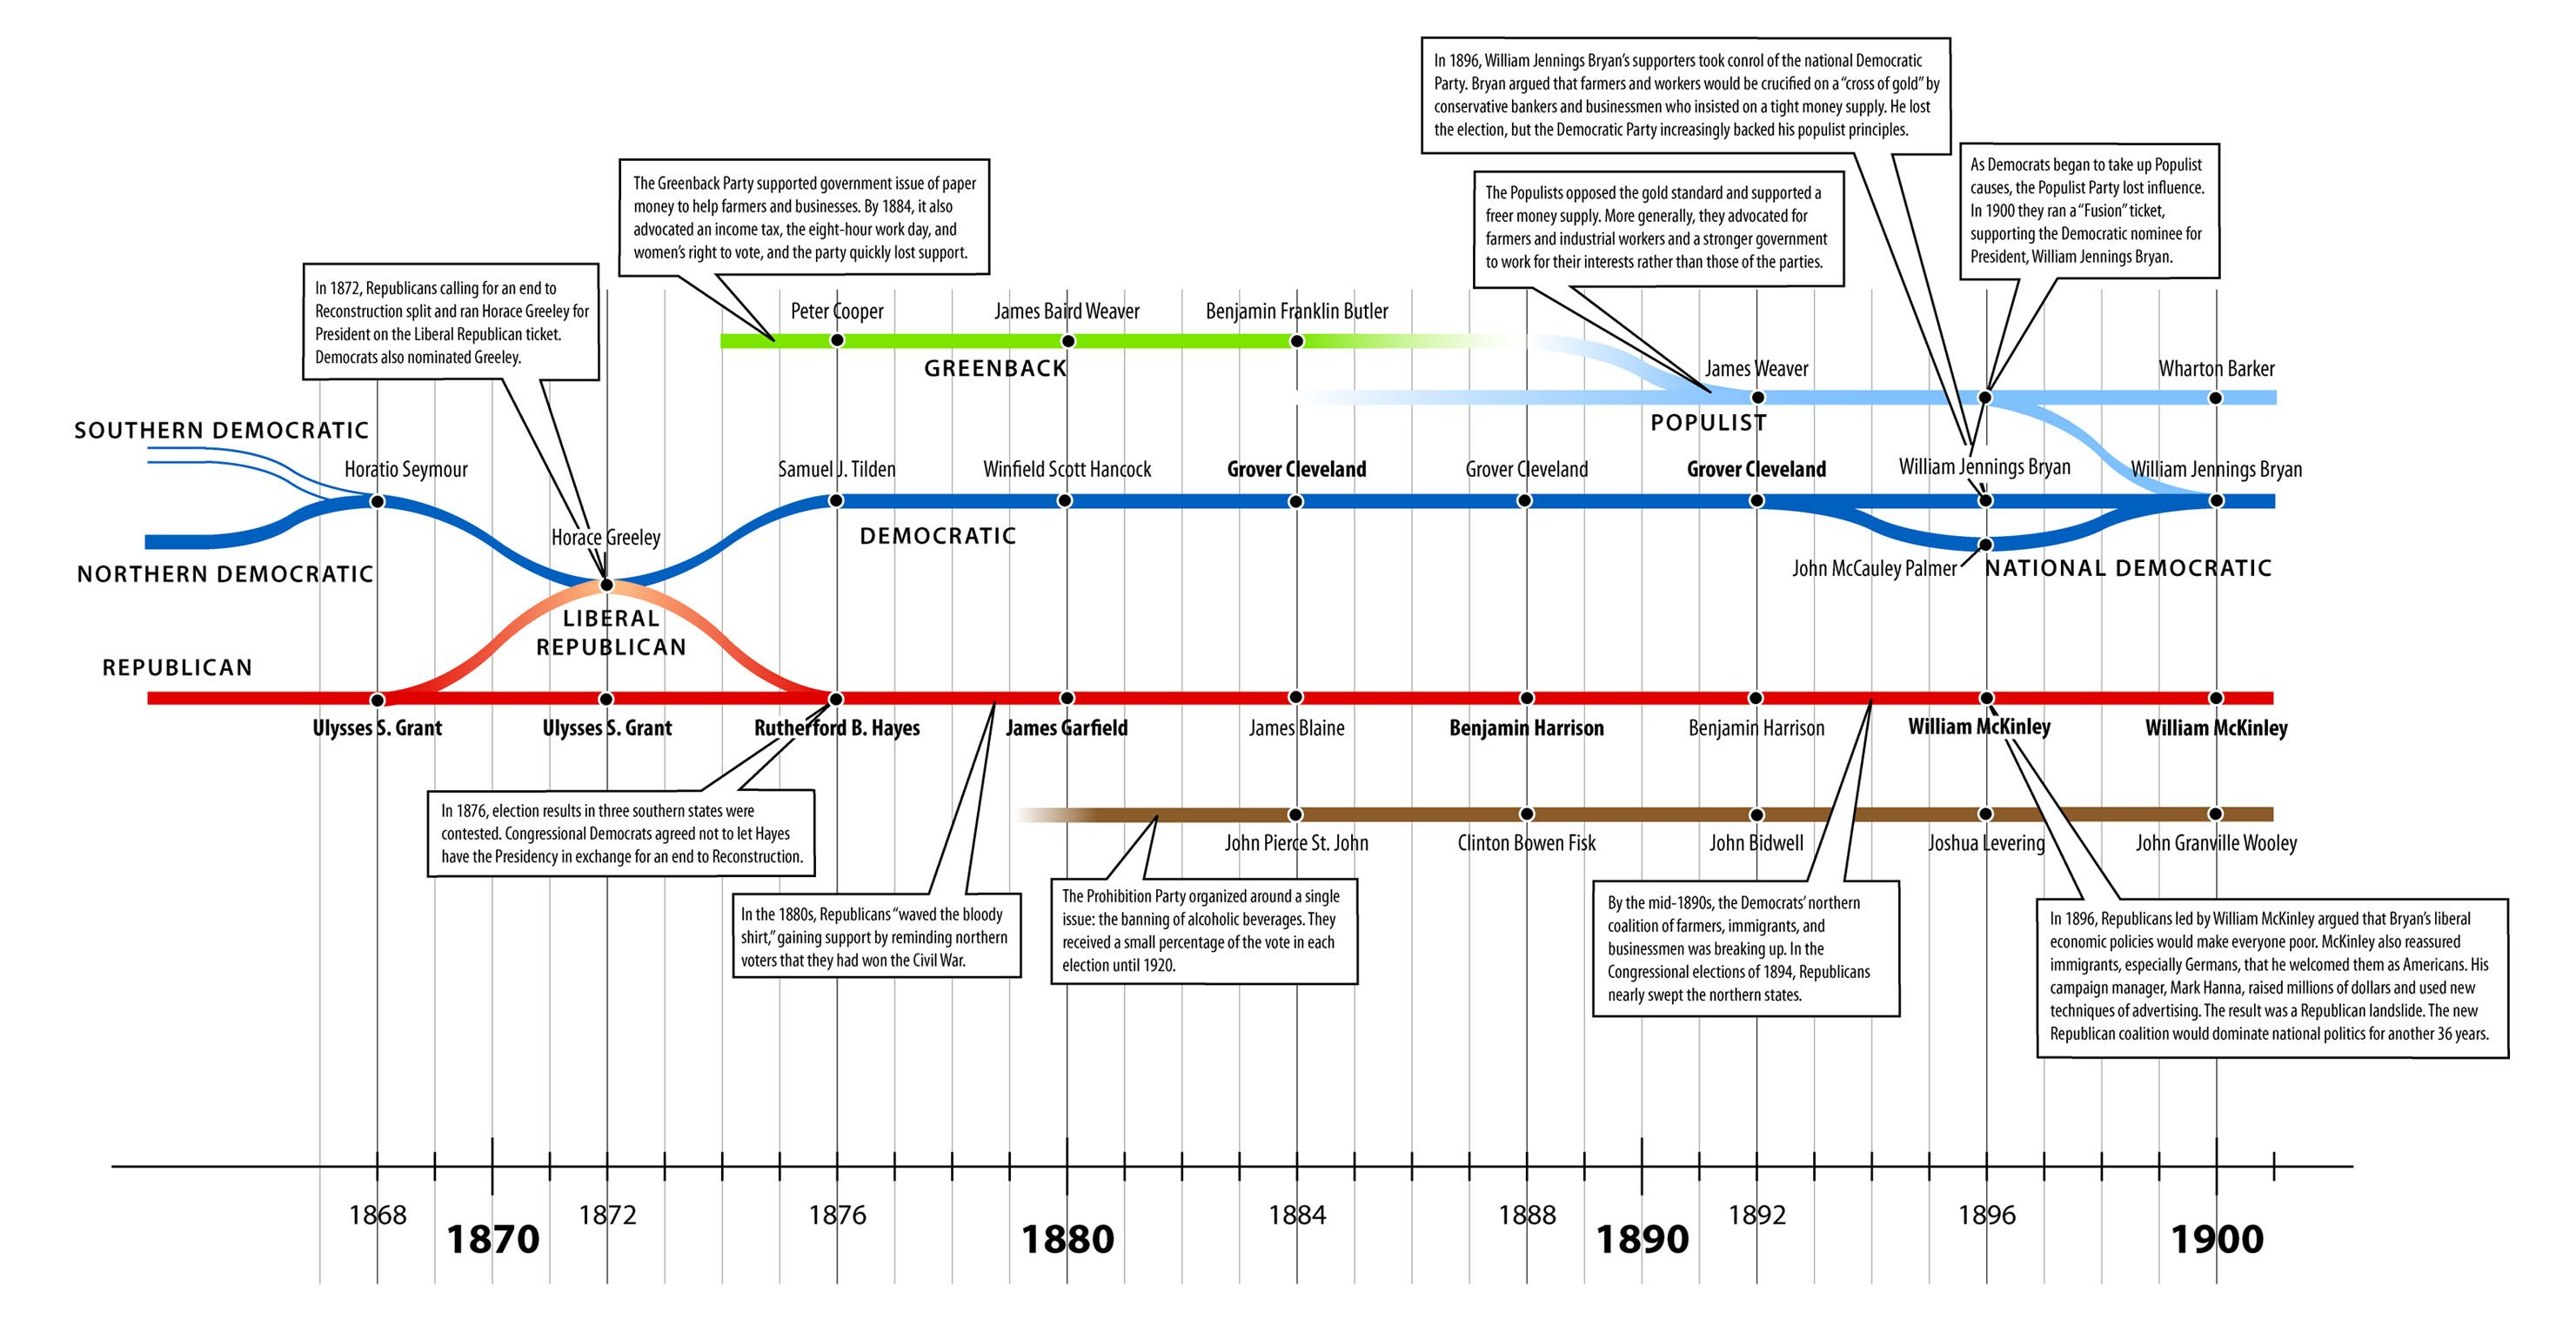 worksheet The Development Of Political Parties Worksheet us political system at the end of 19th century education party timeline an outstanding example information reorganization